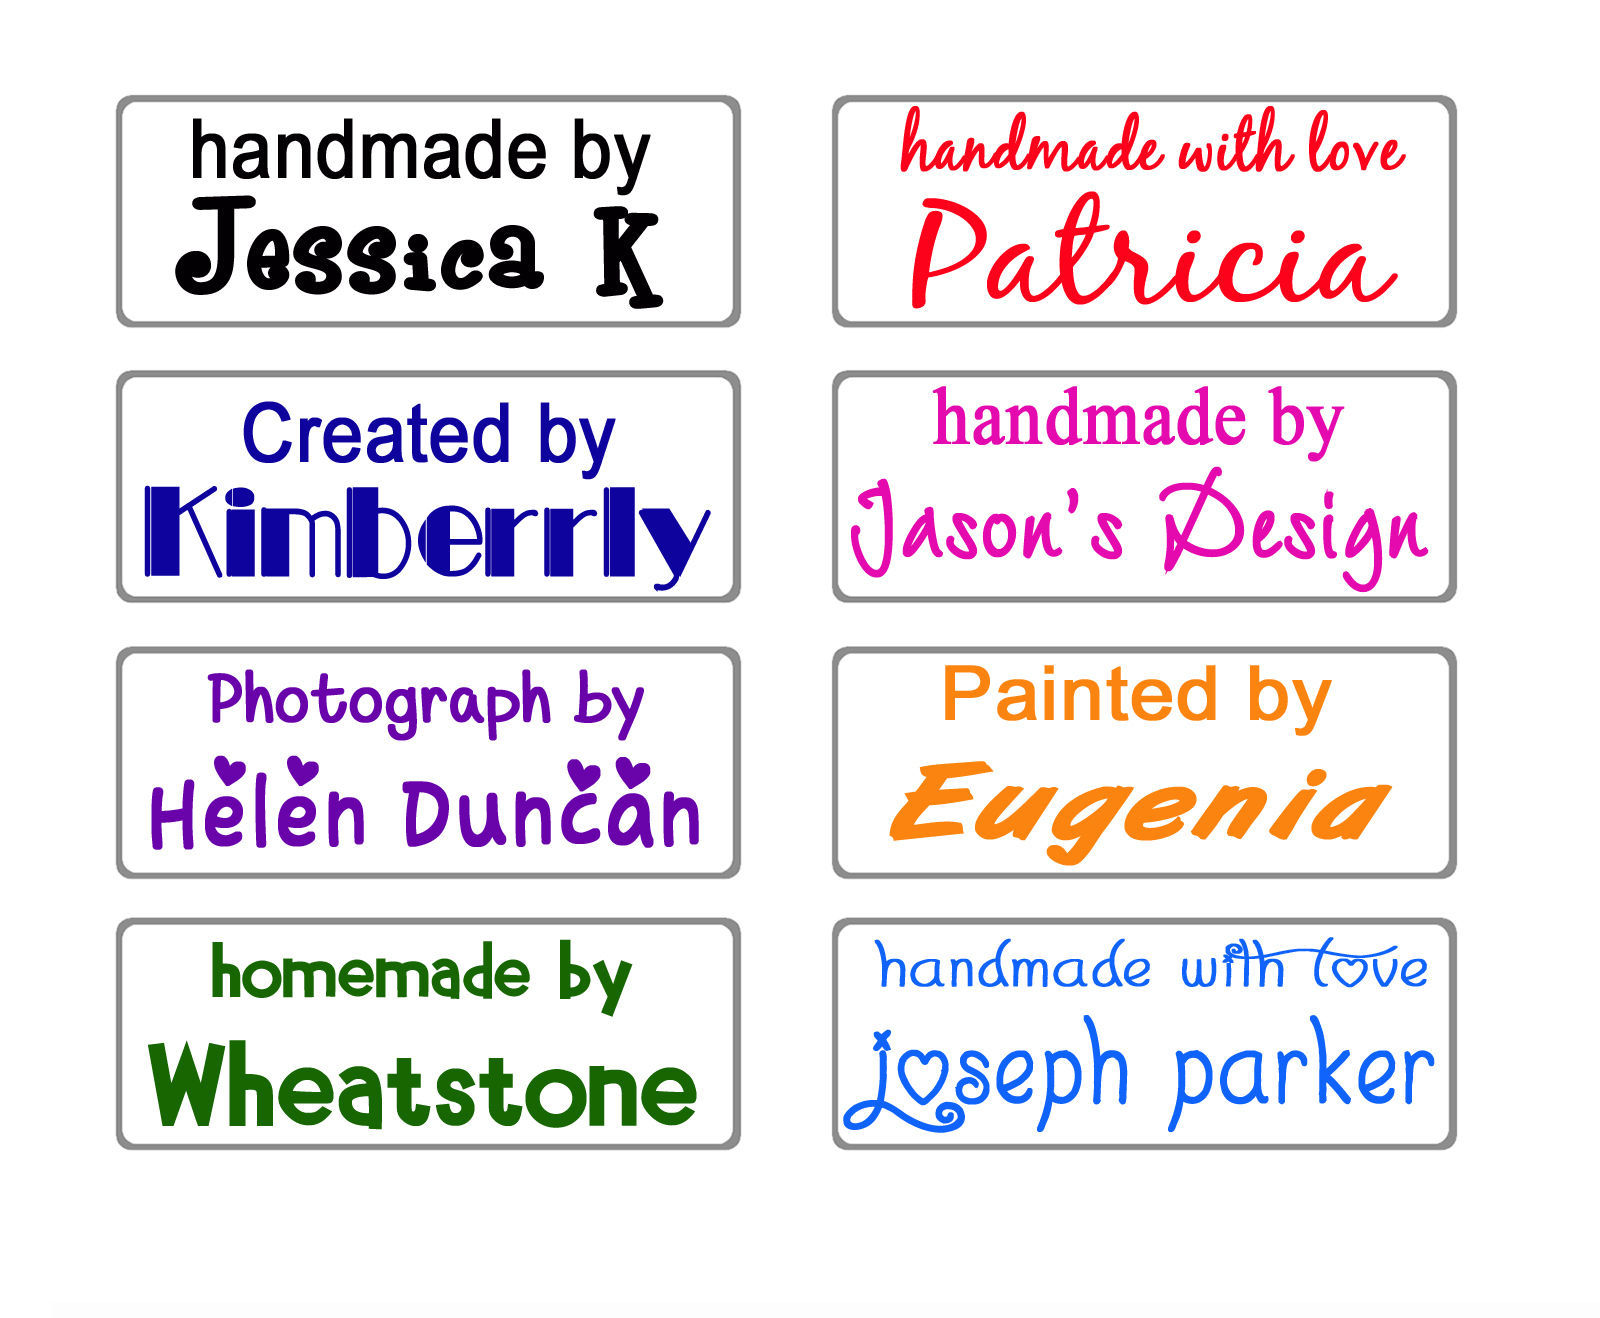 custom name self inking handmade with love by business signature rubber stamp